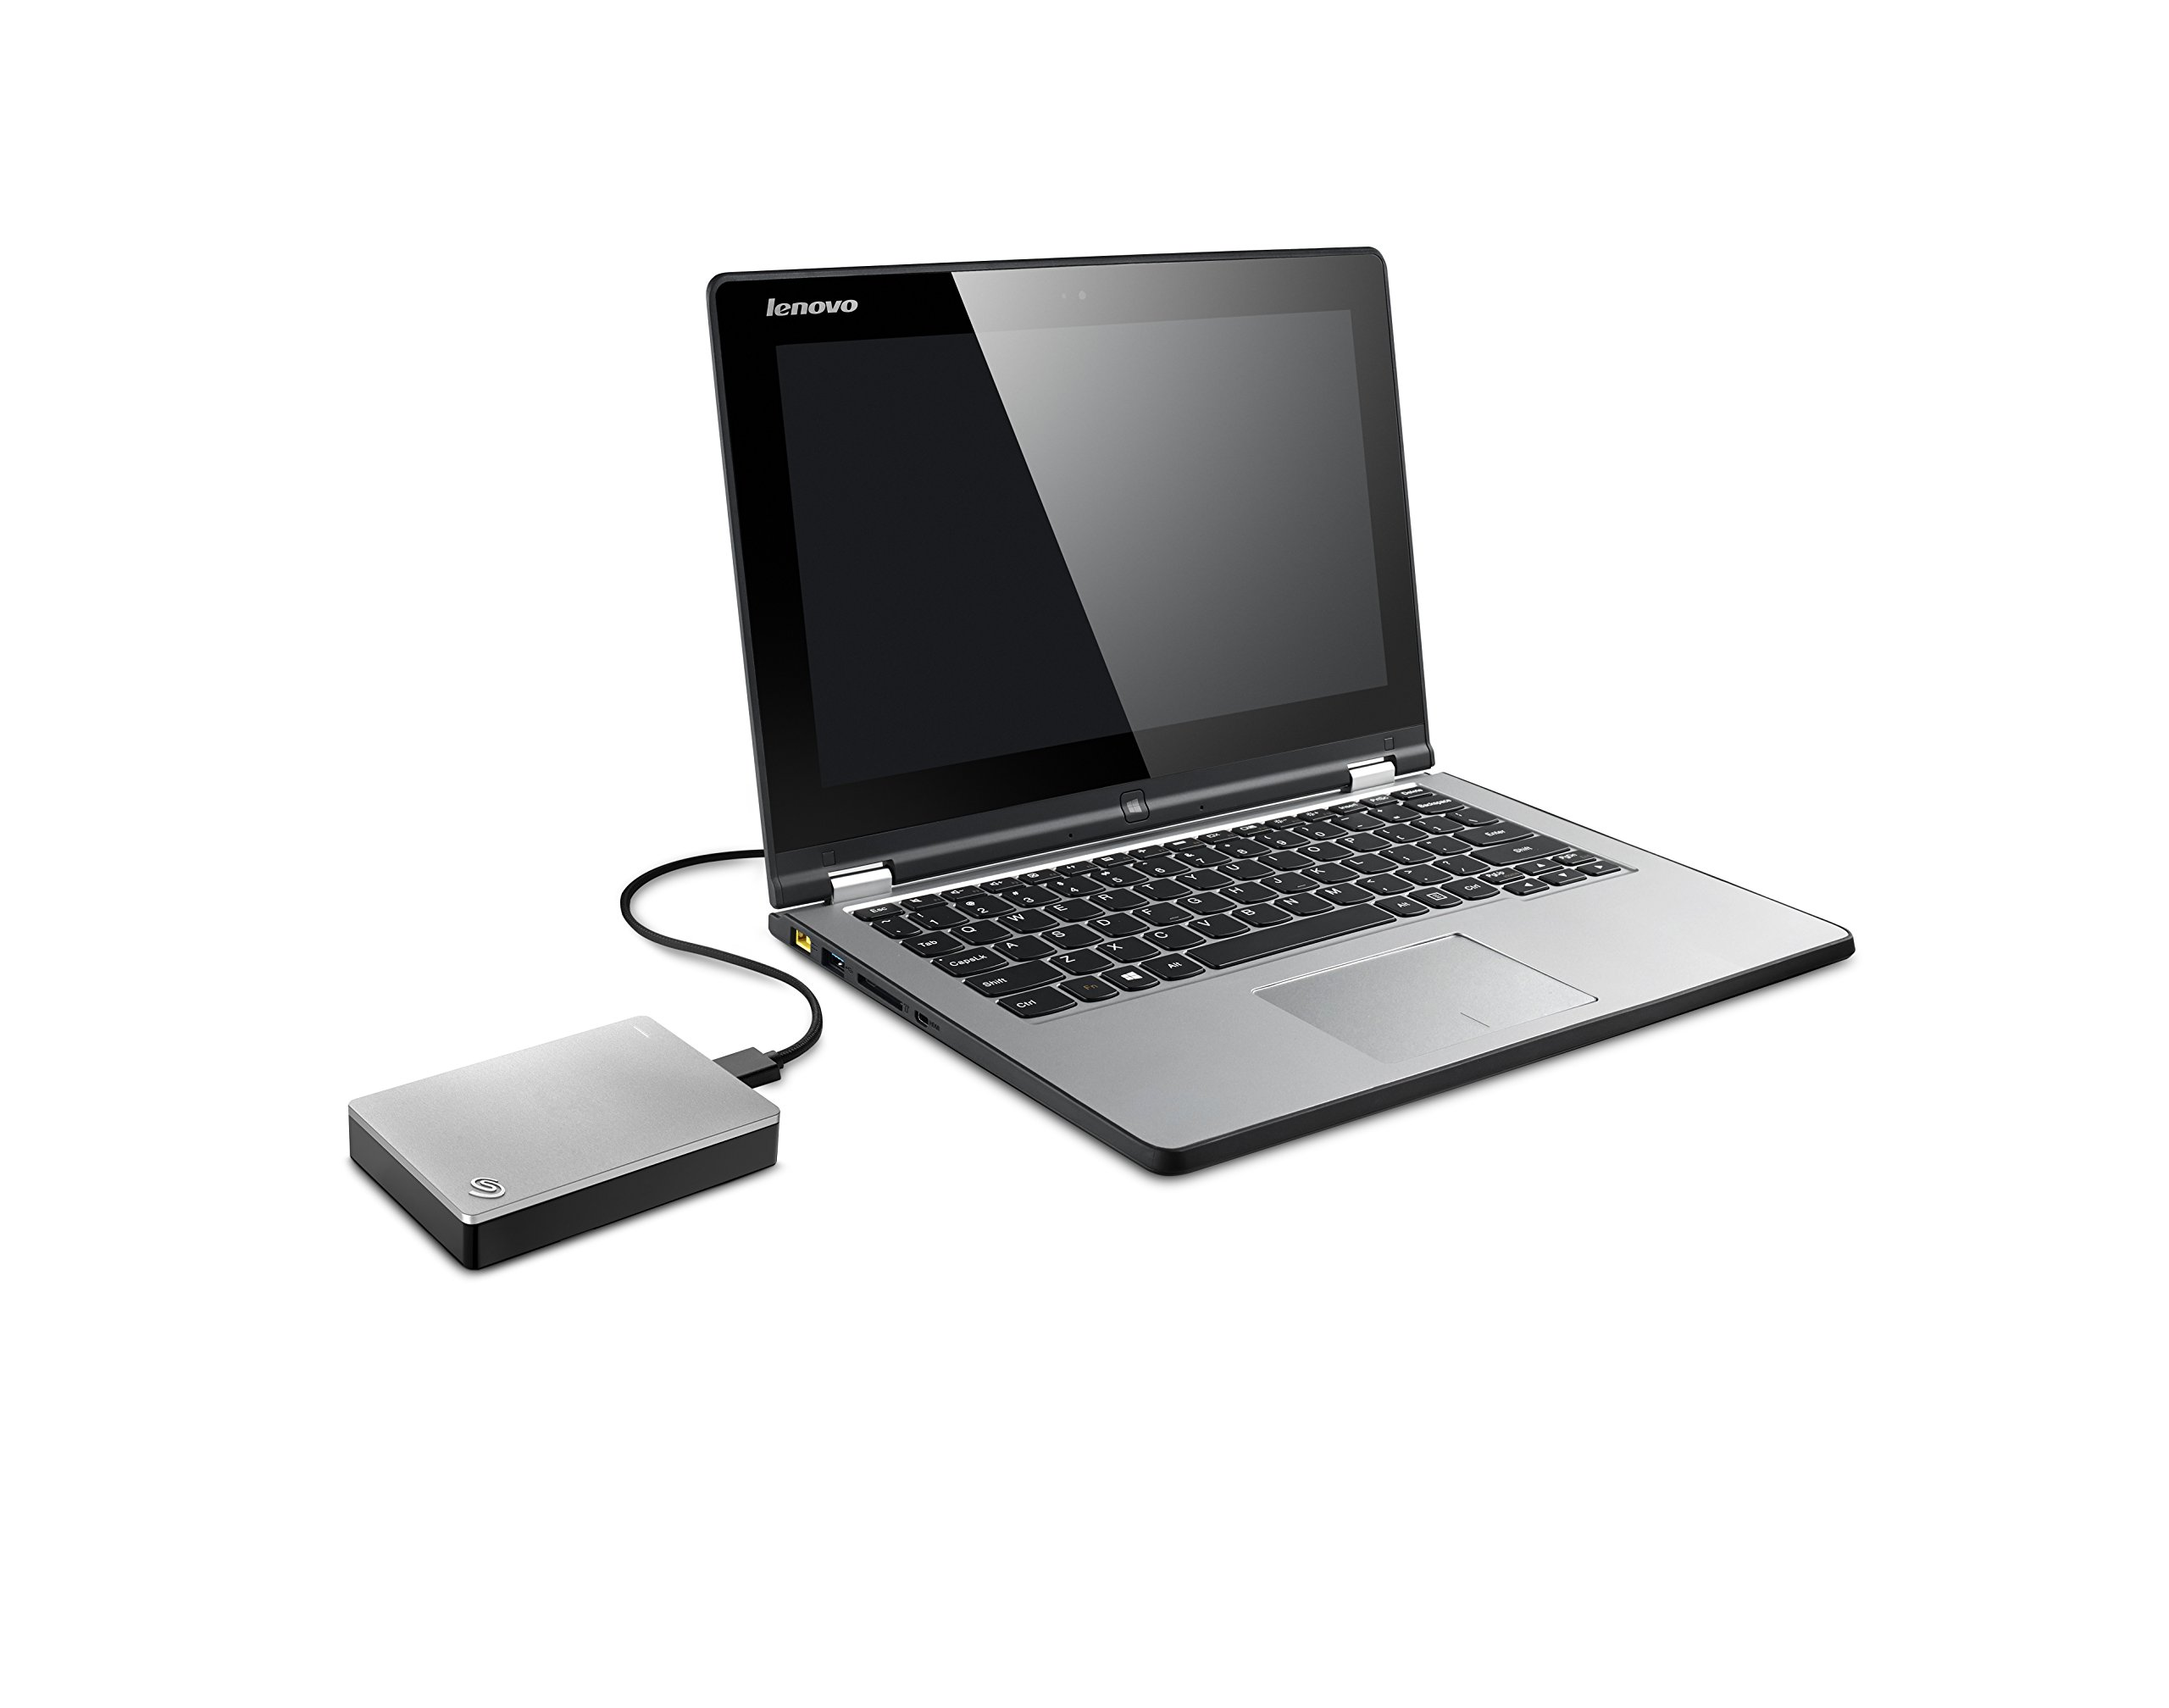 Seagate Backup Plus 4TB Portable External Hard Drive Mac USB 3.0 + 2mo Adobe CC Photography by Seagate